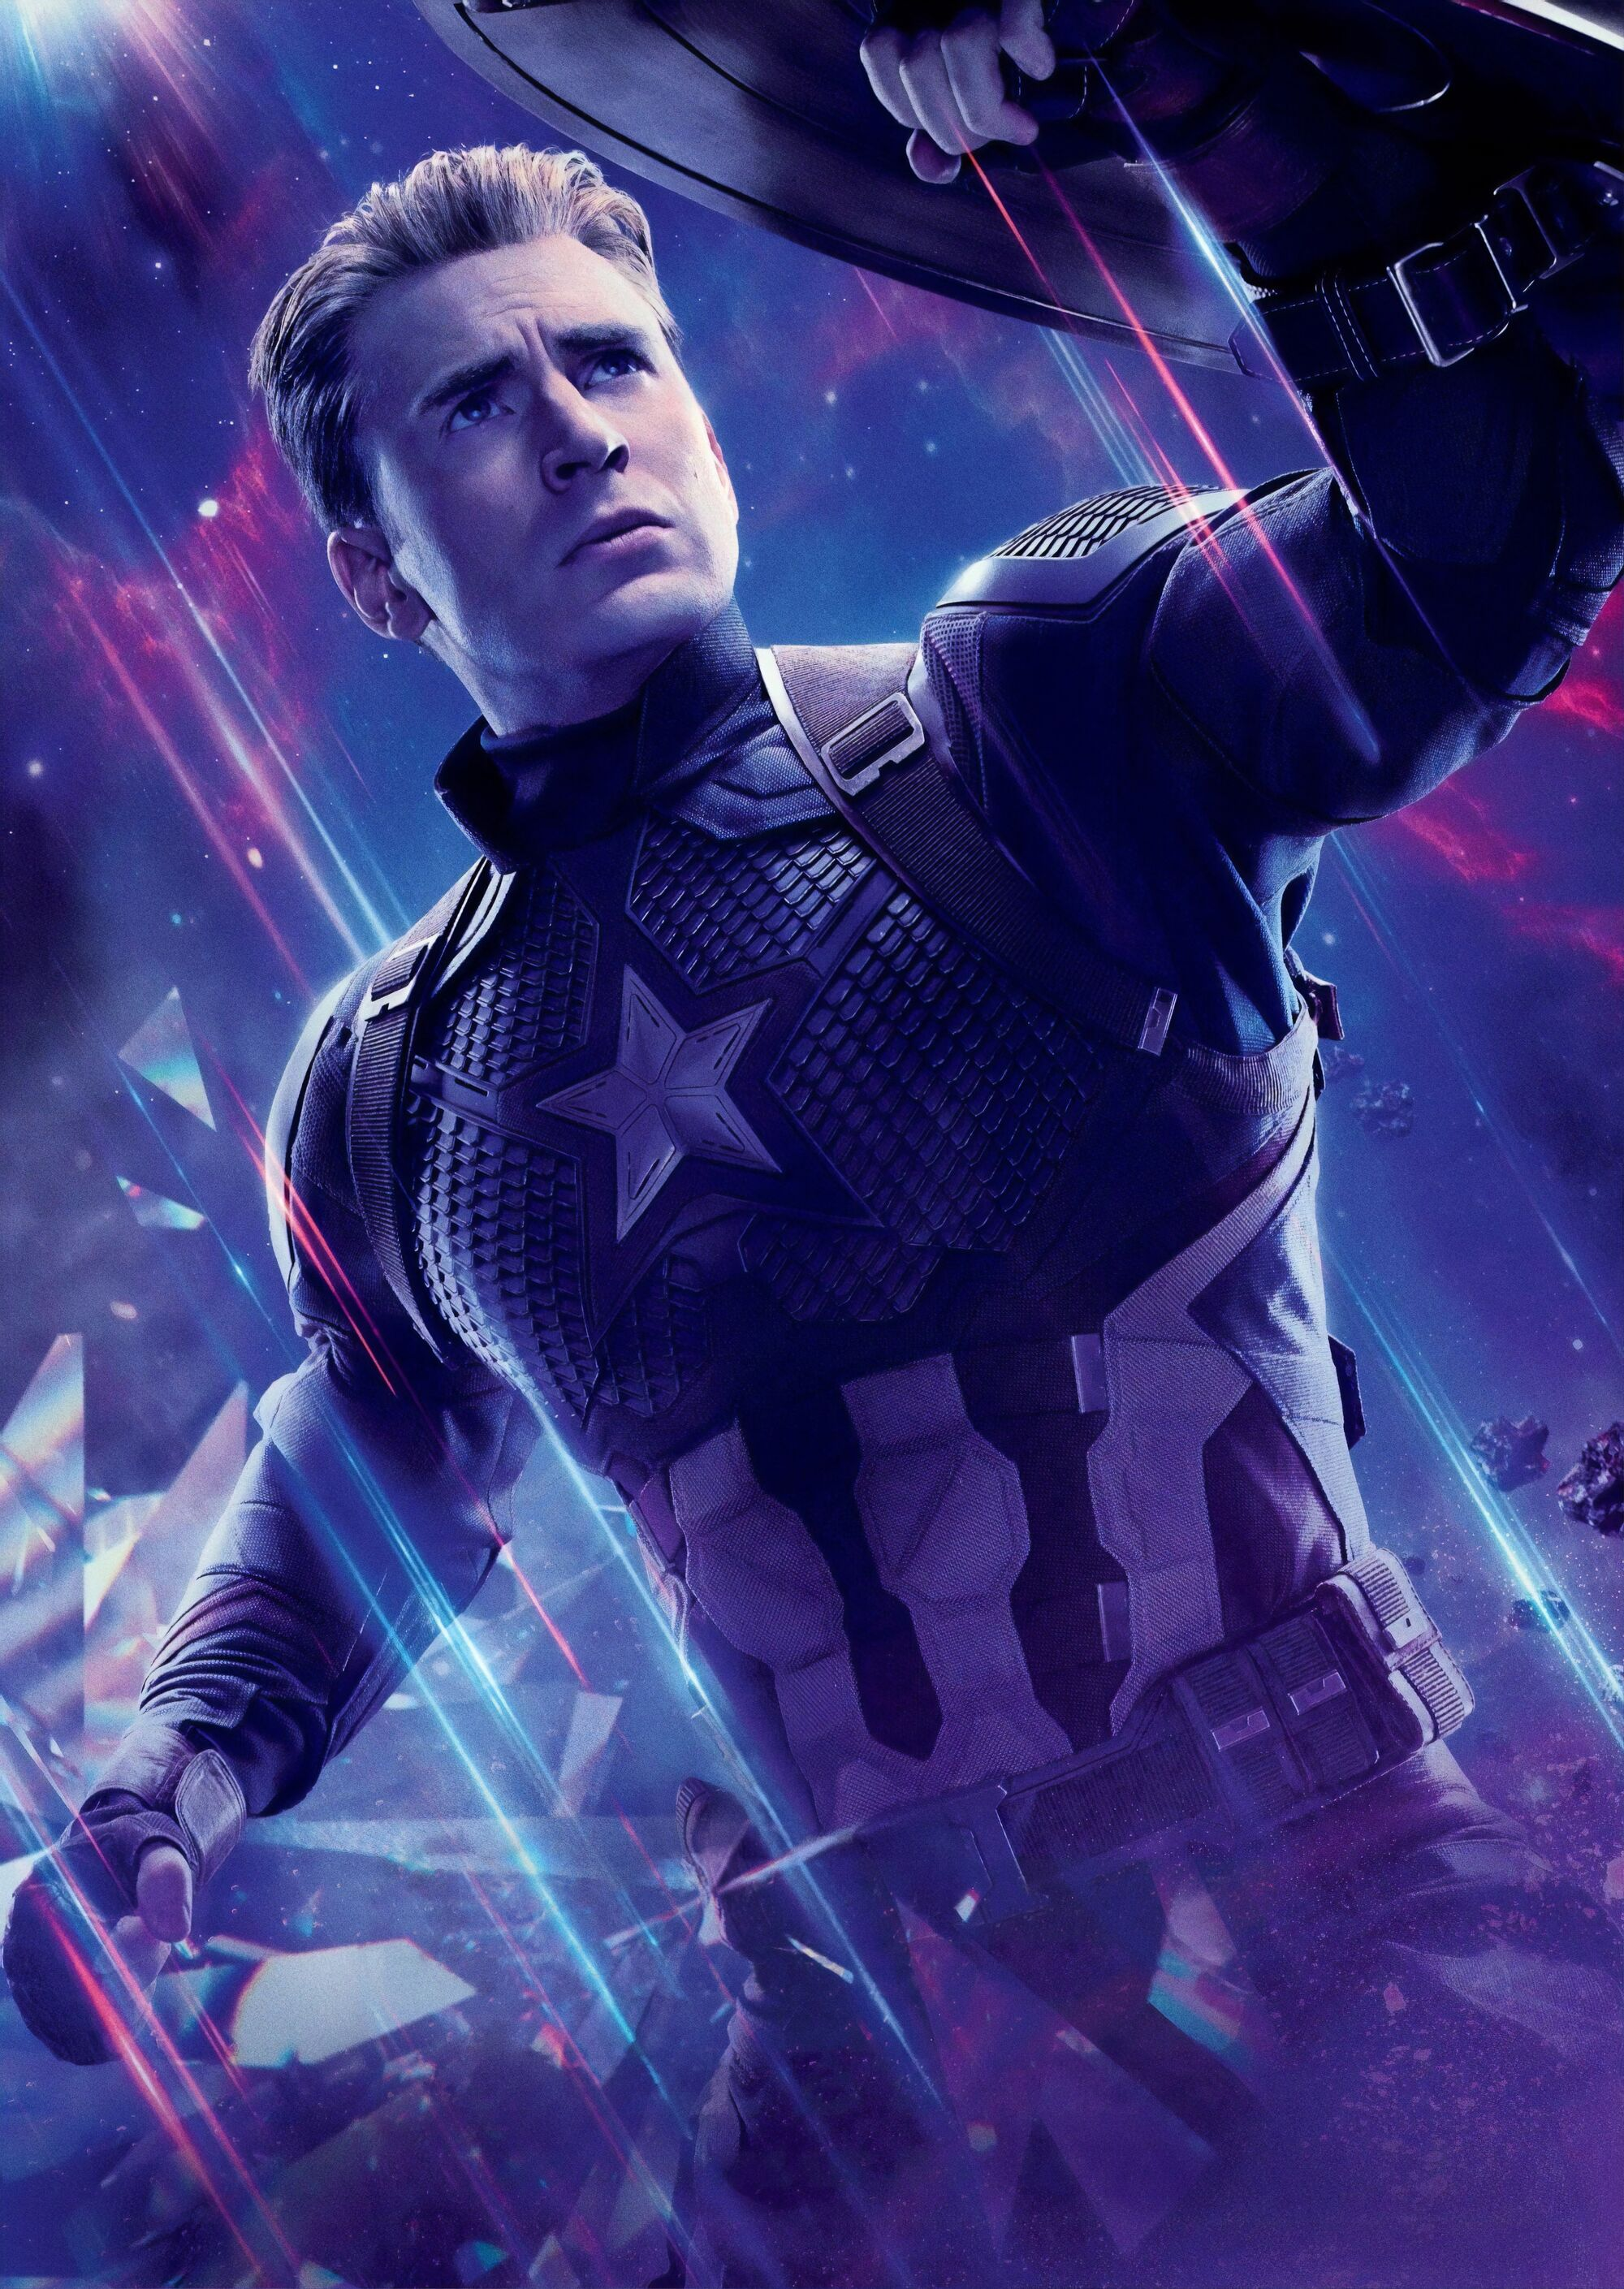 Captain America | Marvel Cinematic Universe Wiki | FANDOM powered by